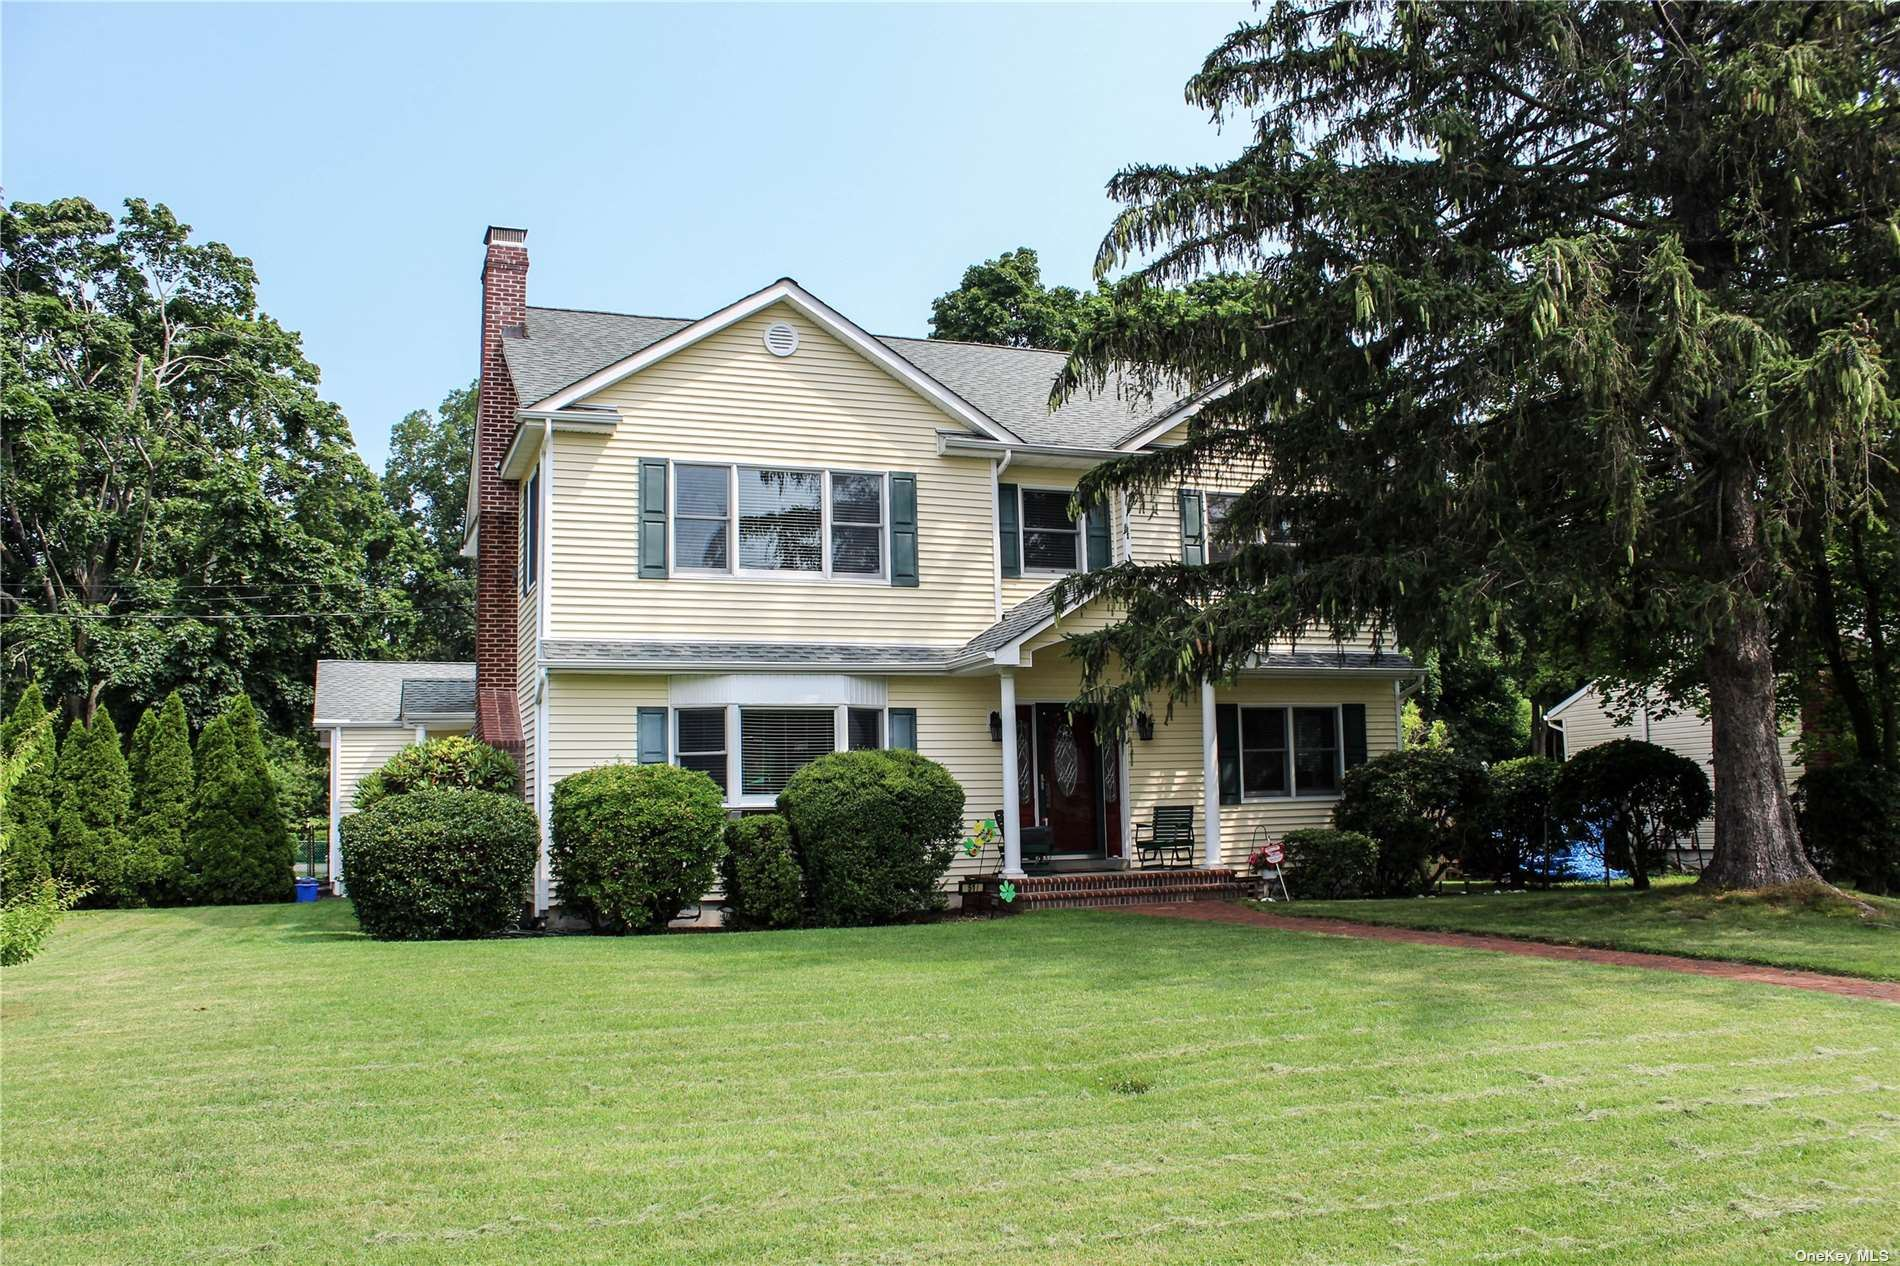 51 Colonial Street, East Northport, NY 11731 - MLS#: 3330790